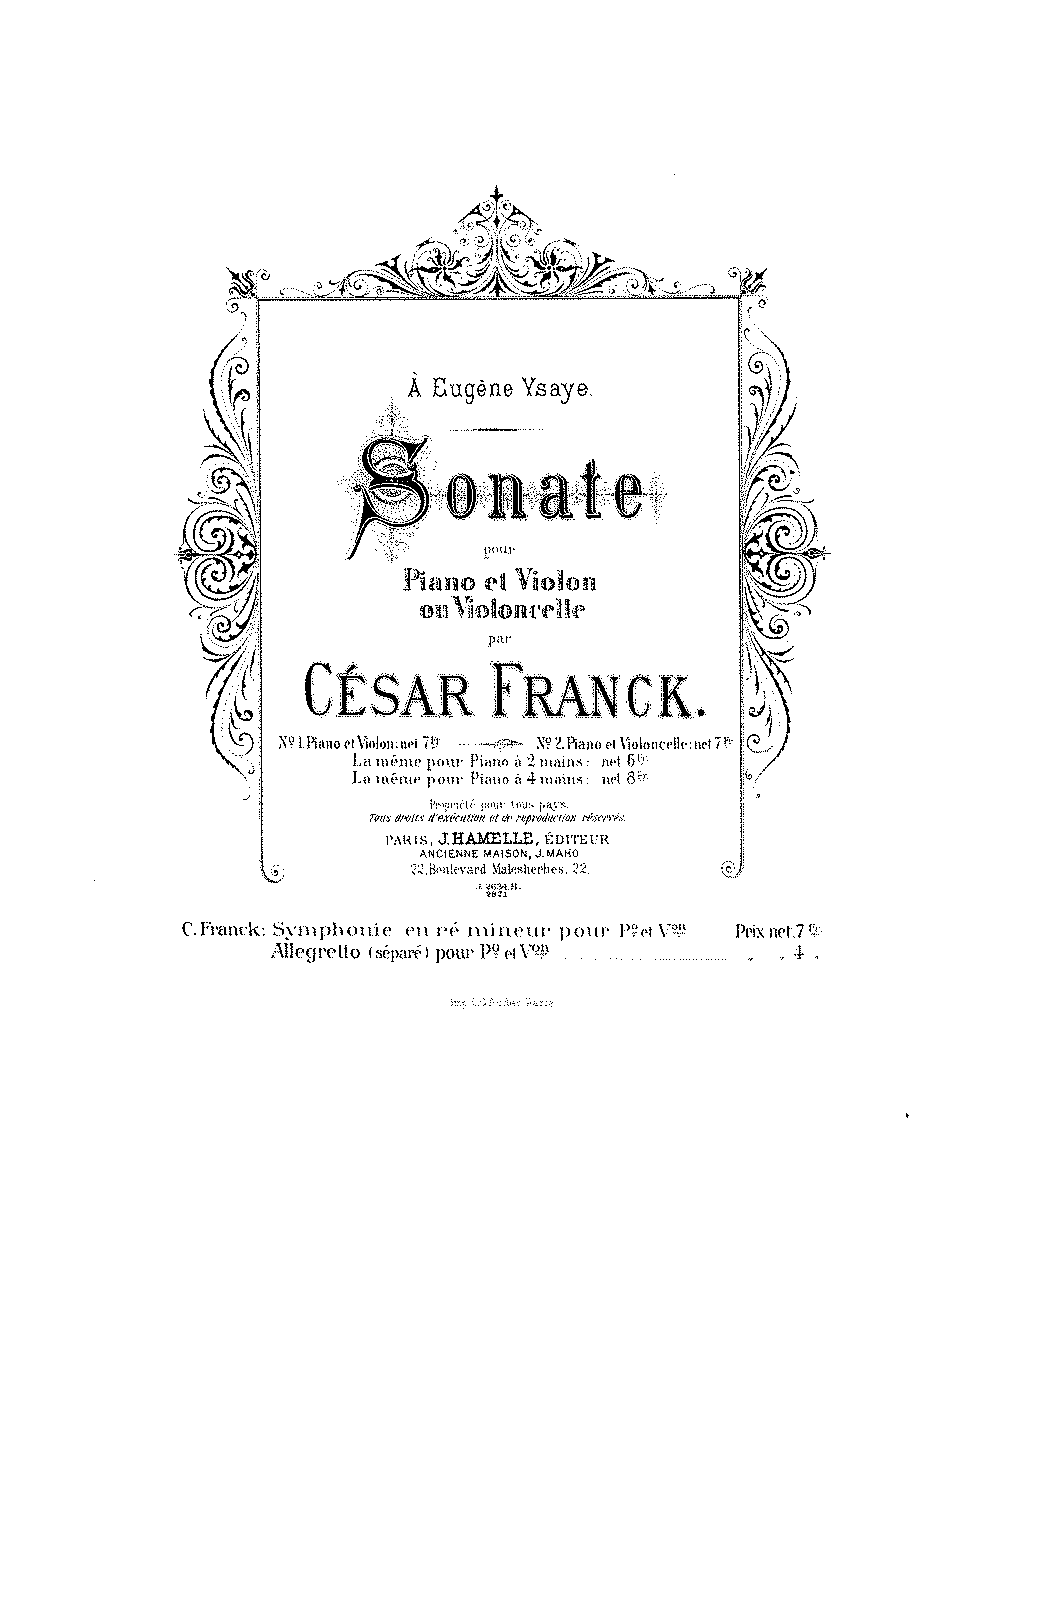 PMLP04994-Franck - Sonata (Delsart) for cello and piano in A major score.pdf